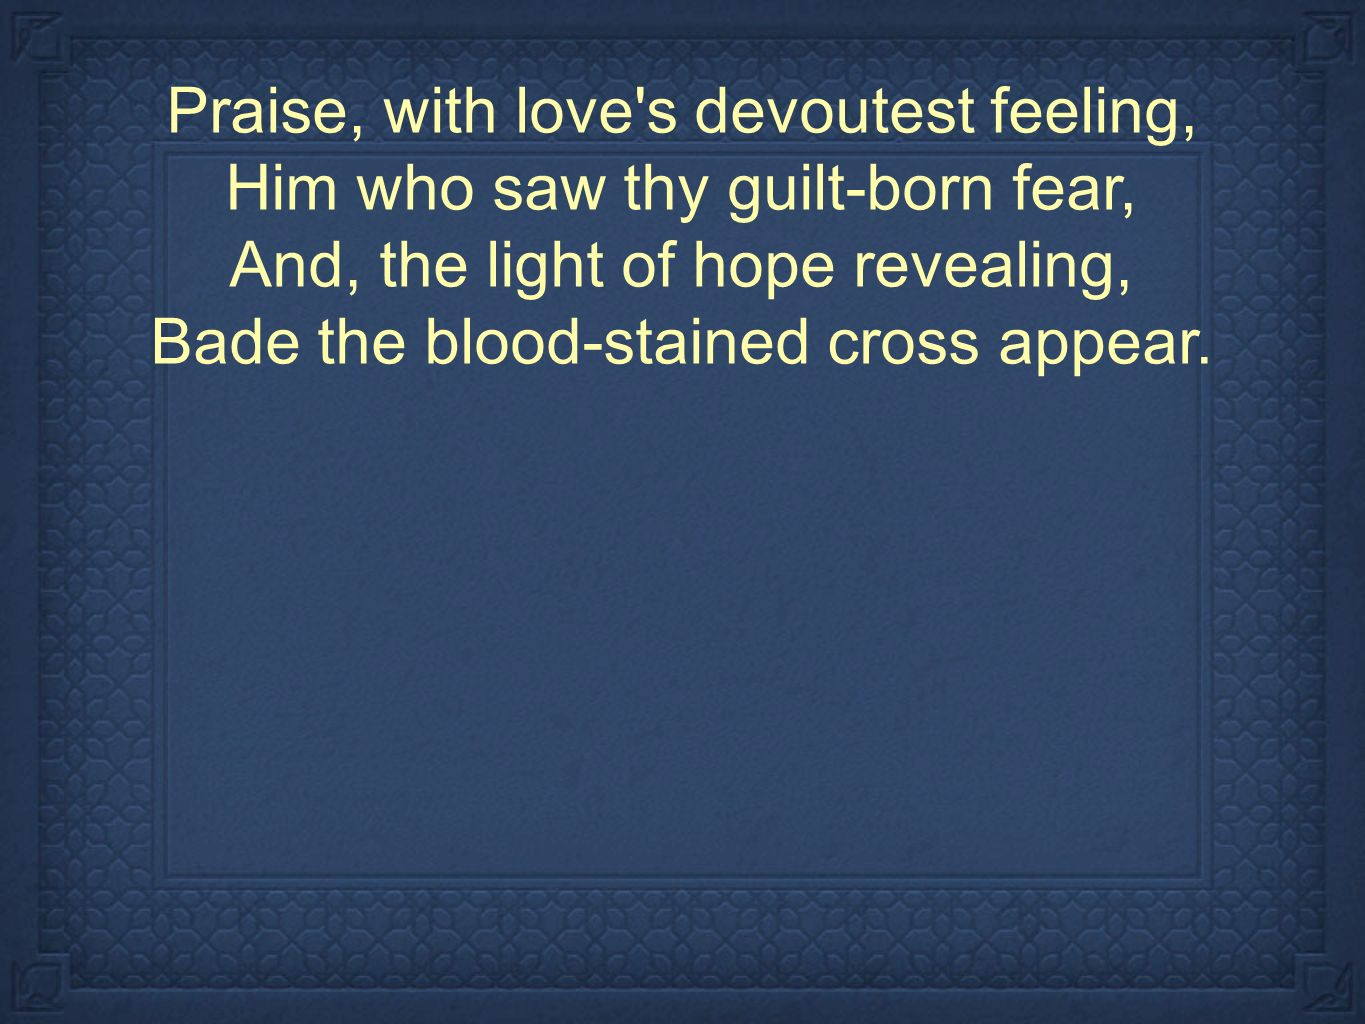 Praise, with love s devoutest feeling, Him who saw thy guilt-born fear, And, the light of hope revealing, Bade the blood-stained cross appear.